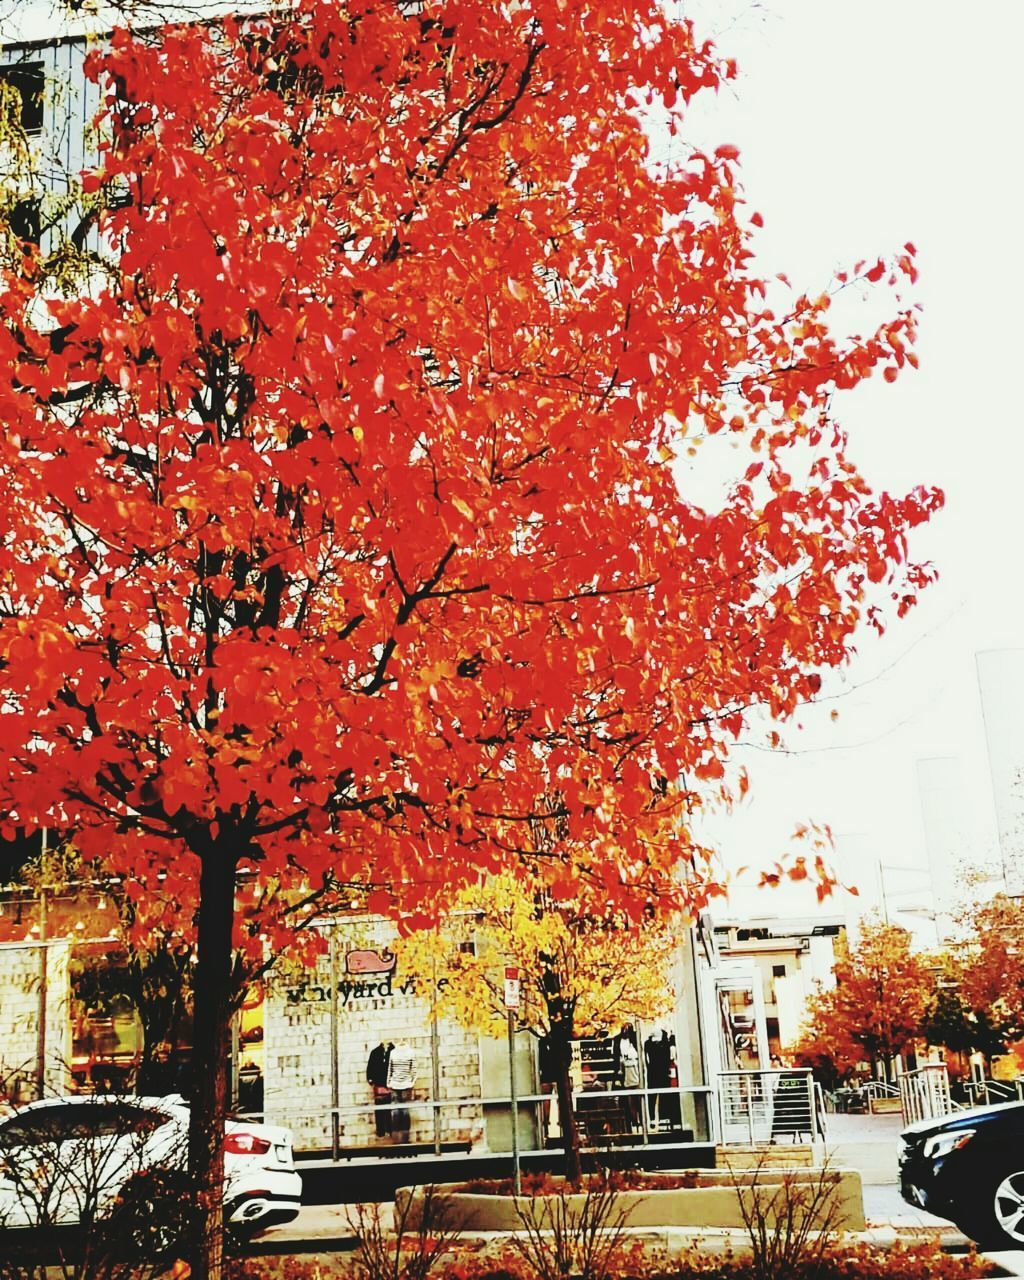 RED AUTUMN TREE BY CITY